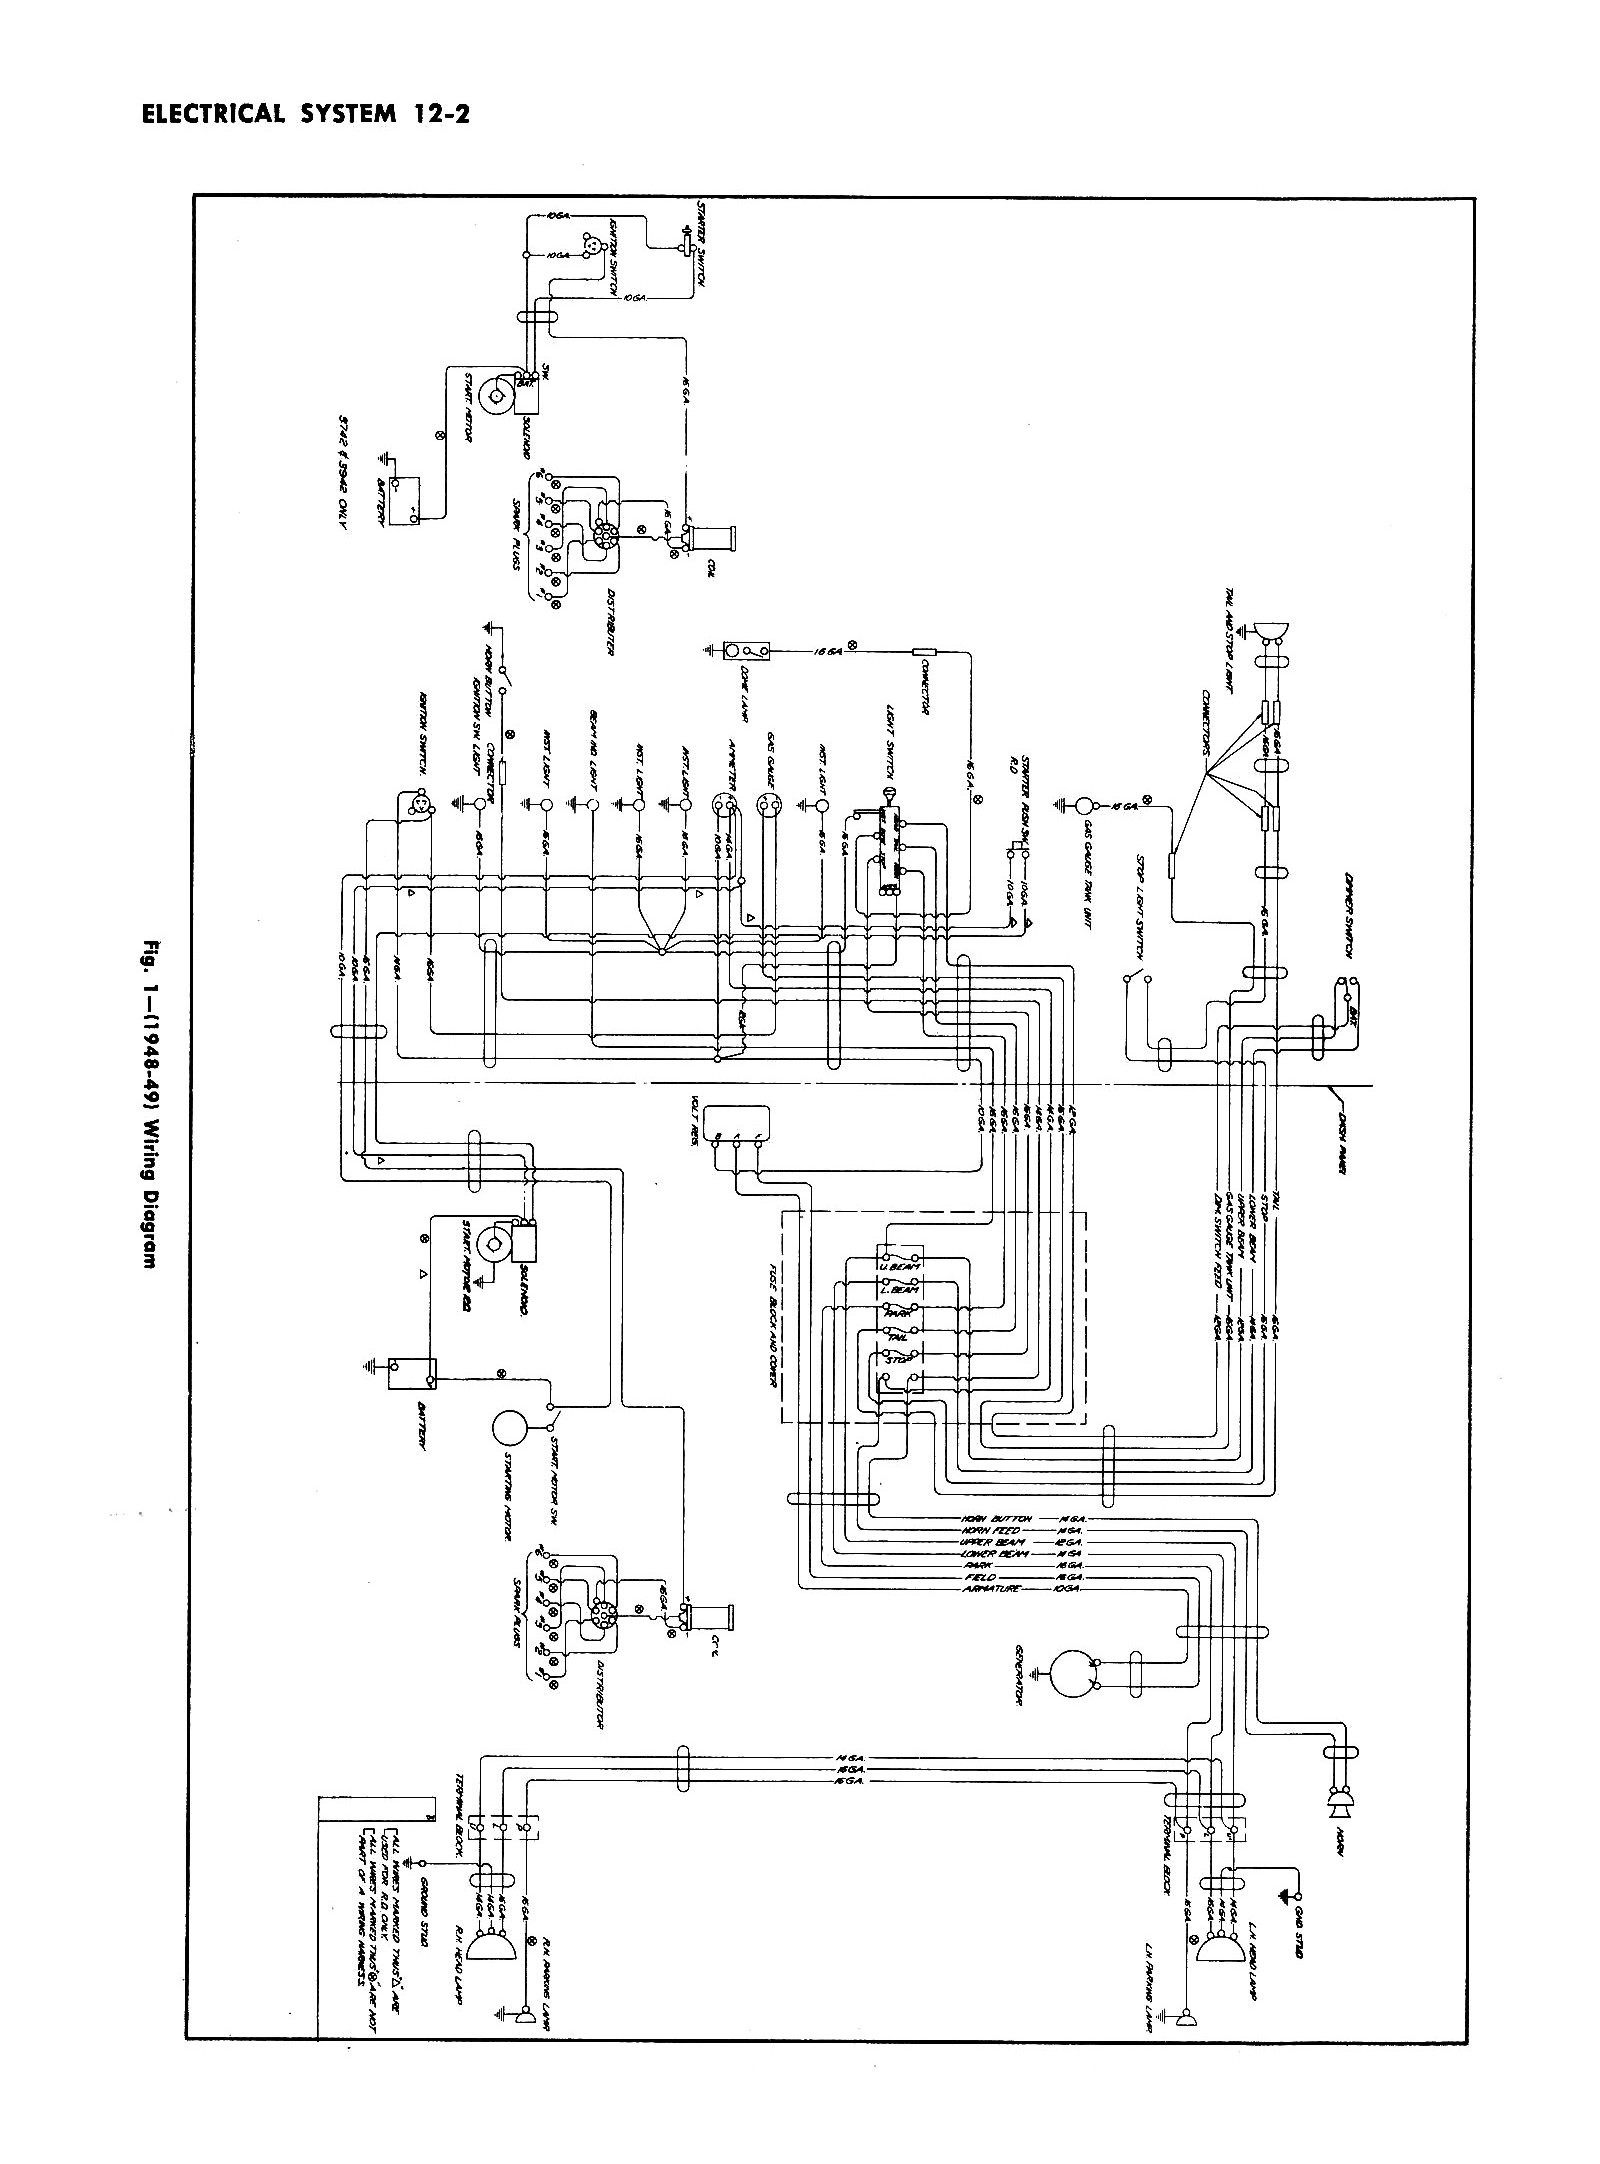 Chevy Impala Fuse Location Block And Schematic Diagrams 2007 Box Replacement Complete Wiring 2008